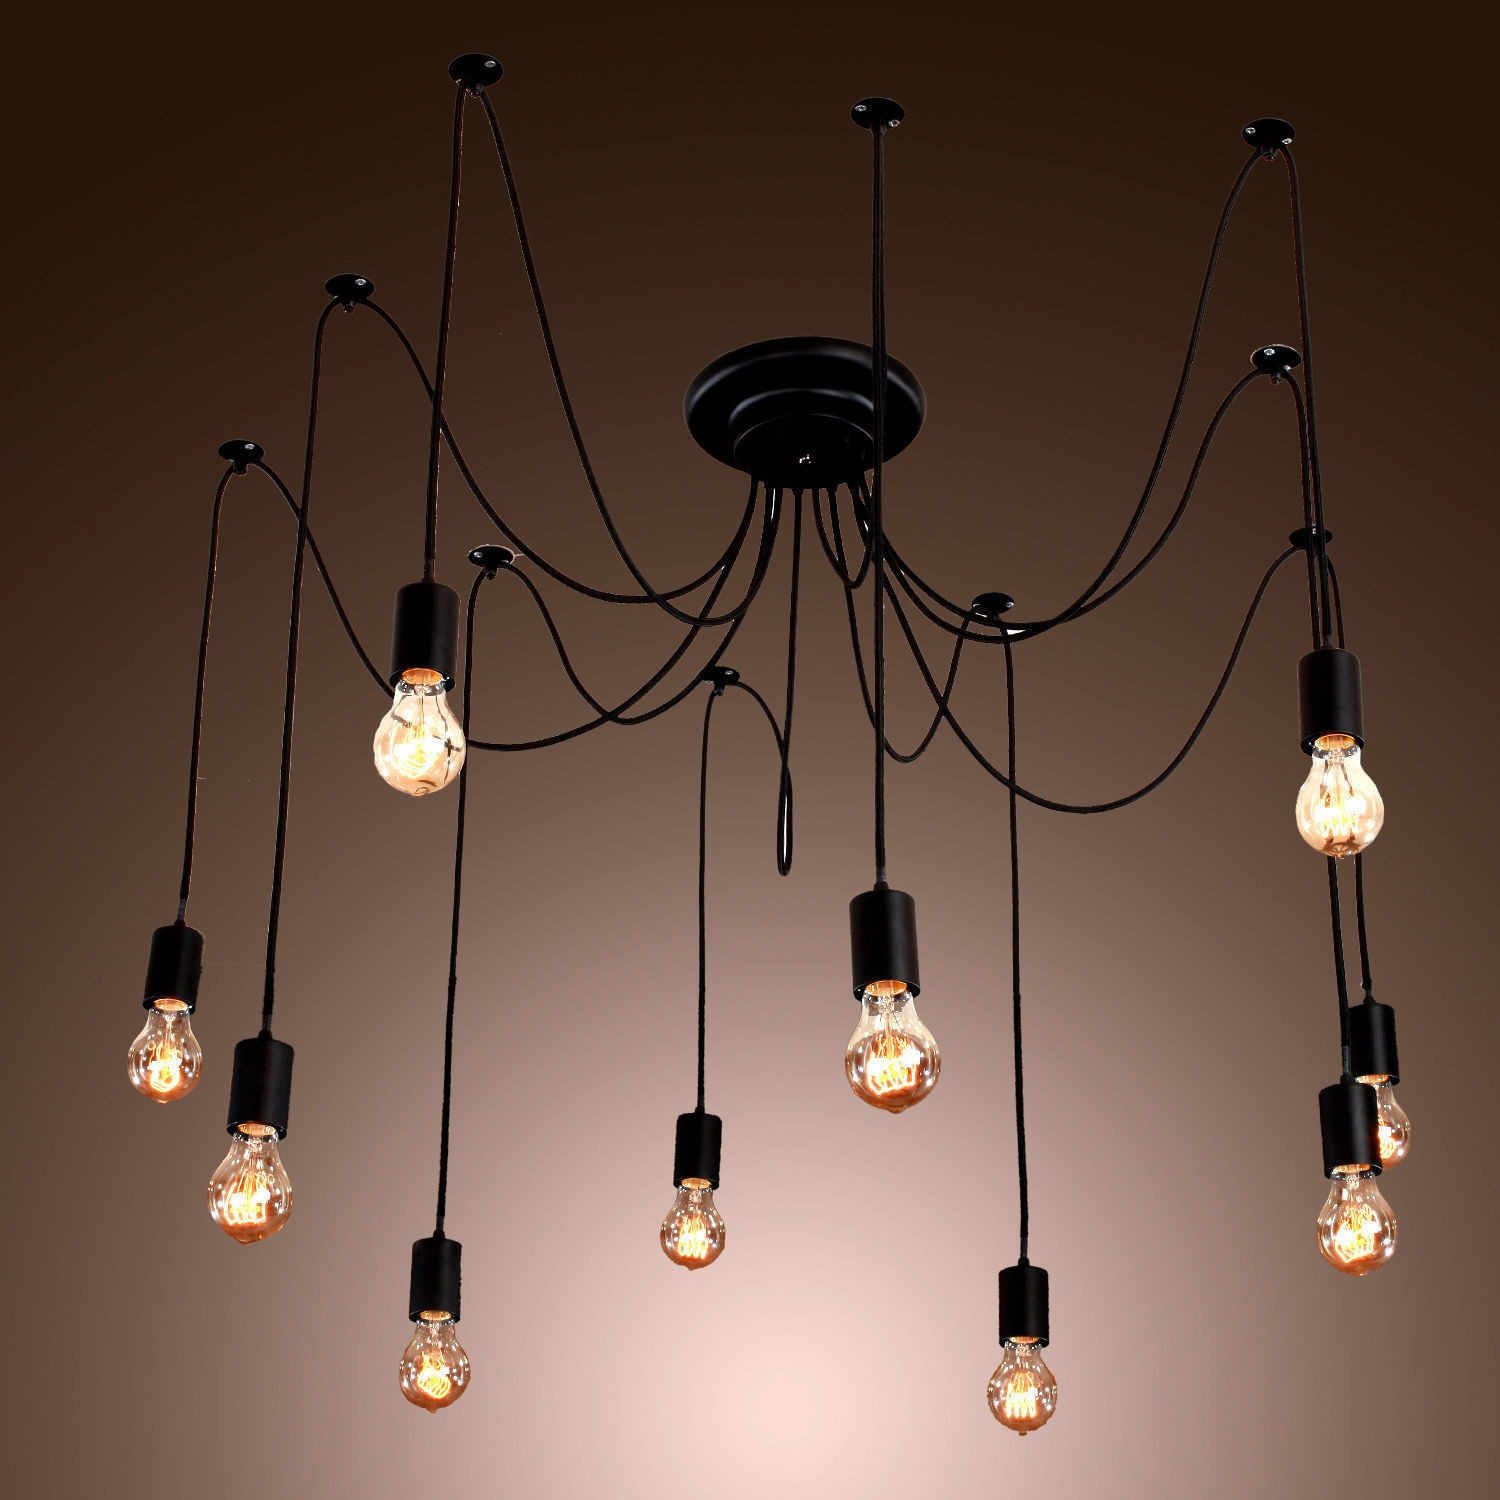 vintage edison industrial style diy chandelier retro pendant light ceiling lamps ebay. Black Bedroom Furniture Sets. Home Design Ideas